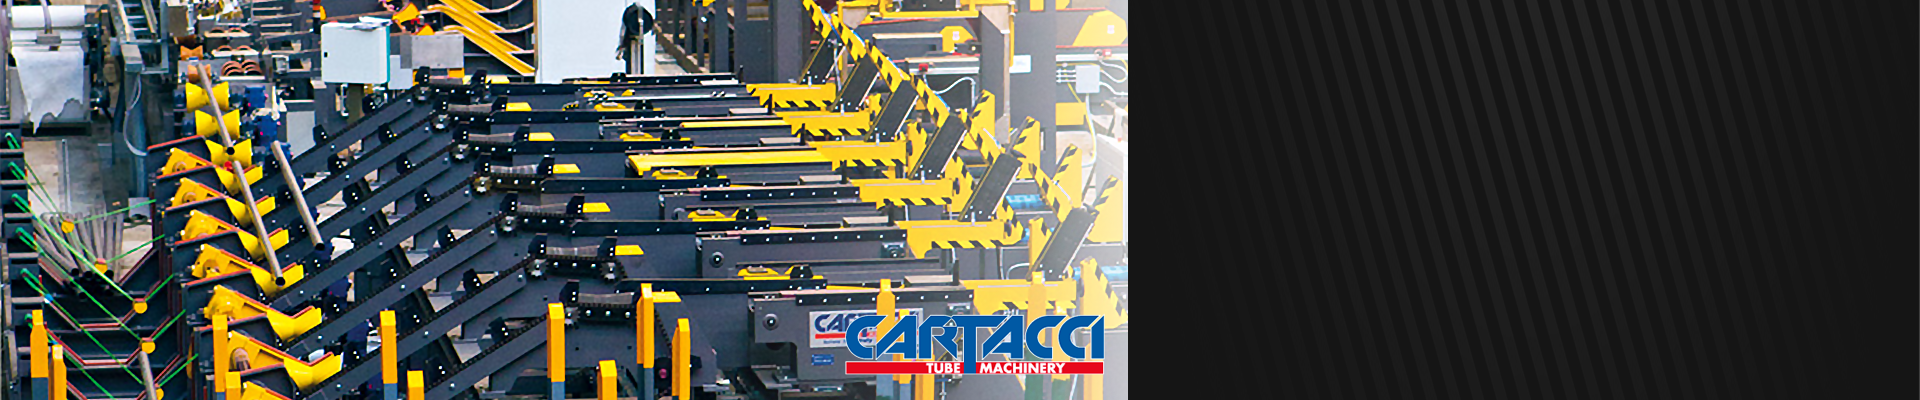 Cartacci, Lines for cold leveling, handling and packaging of pipelines.